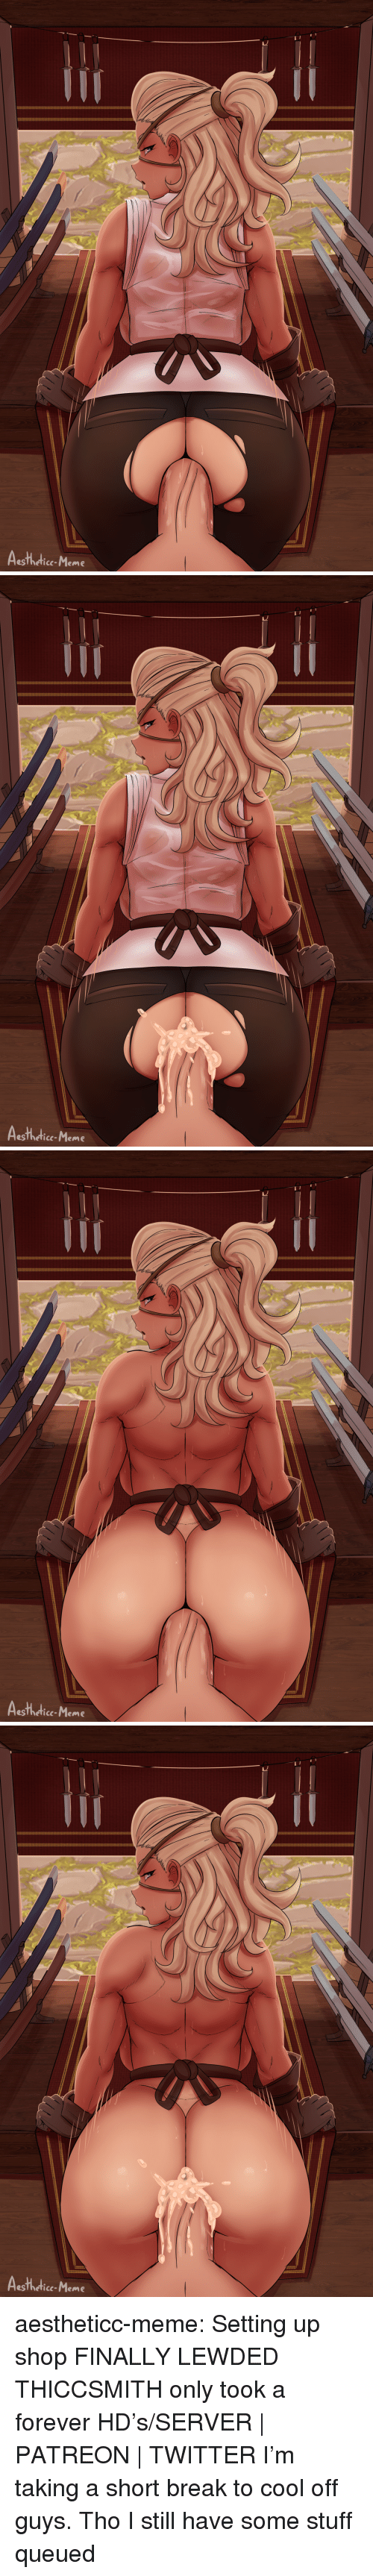 Gg, Meme, and Target: L2  esThefice-Meme   L2  esThefice-Meme   esThefice-Meme   esThefice-Meme aestheticc-meme: Setting up shop FINALLY LEWDED THICCSMITH only took a forever HD's/SERVER| PATREON| TWITTER I'm taking a short break to cool off guys. Tho I still have some stuff queued